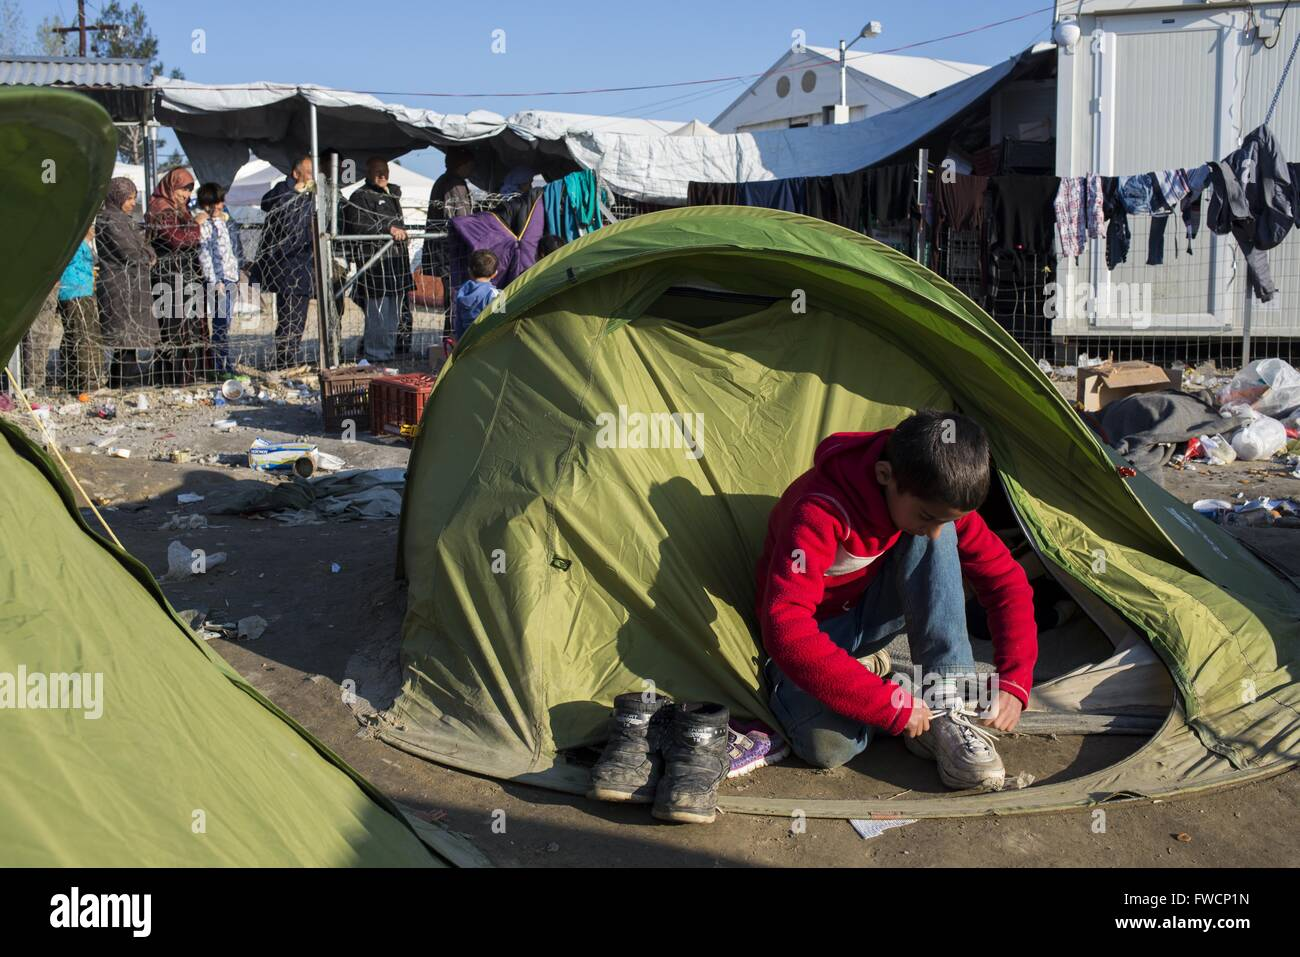 Madrid Spain 20th Mar 2016 Refugees Camp In Idomeni The Camp Stock Photo Alamy